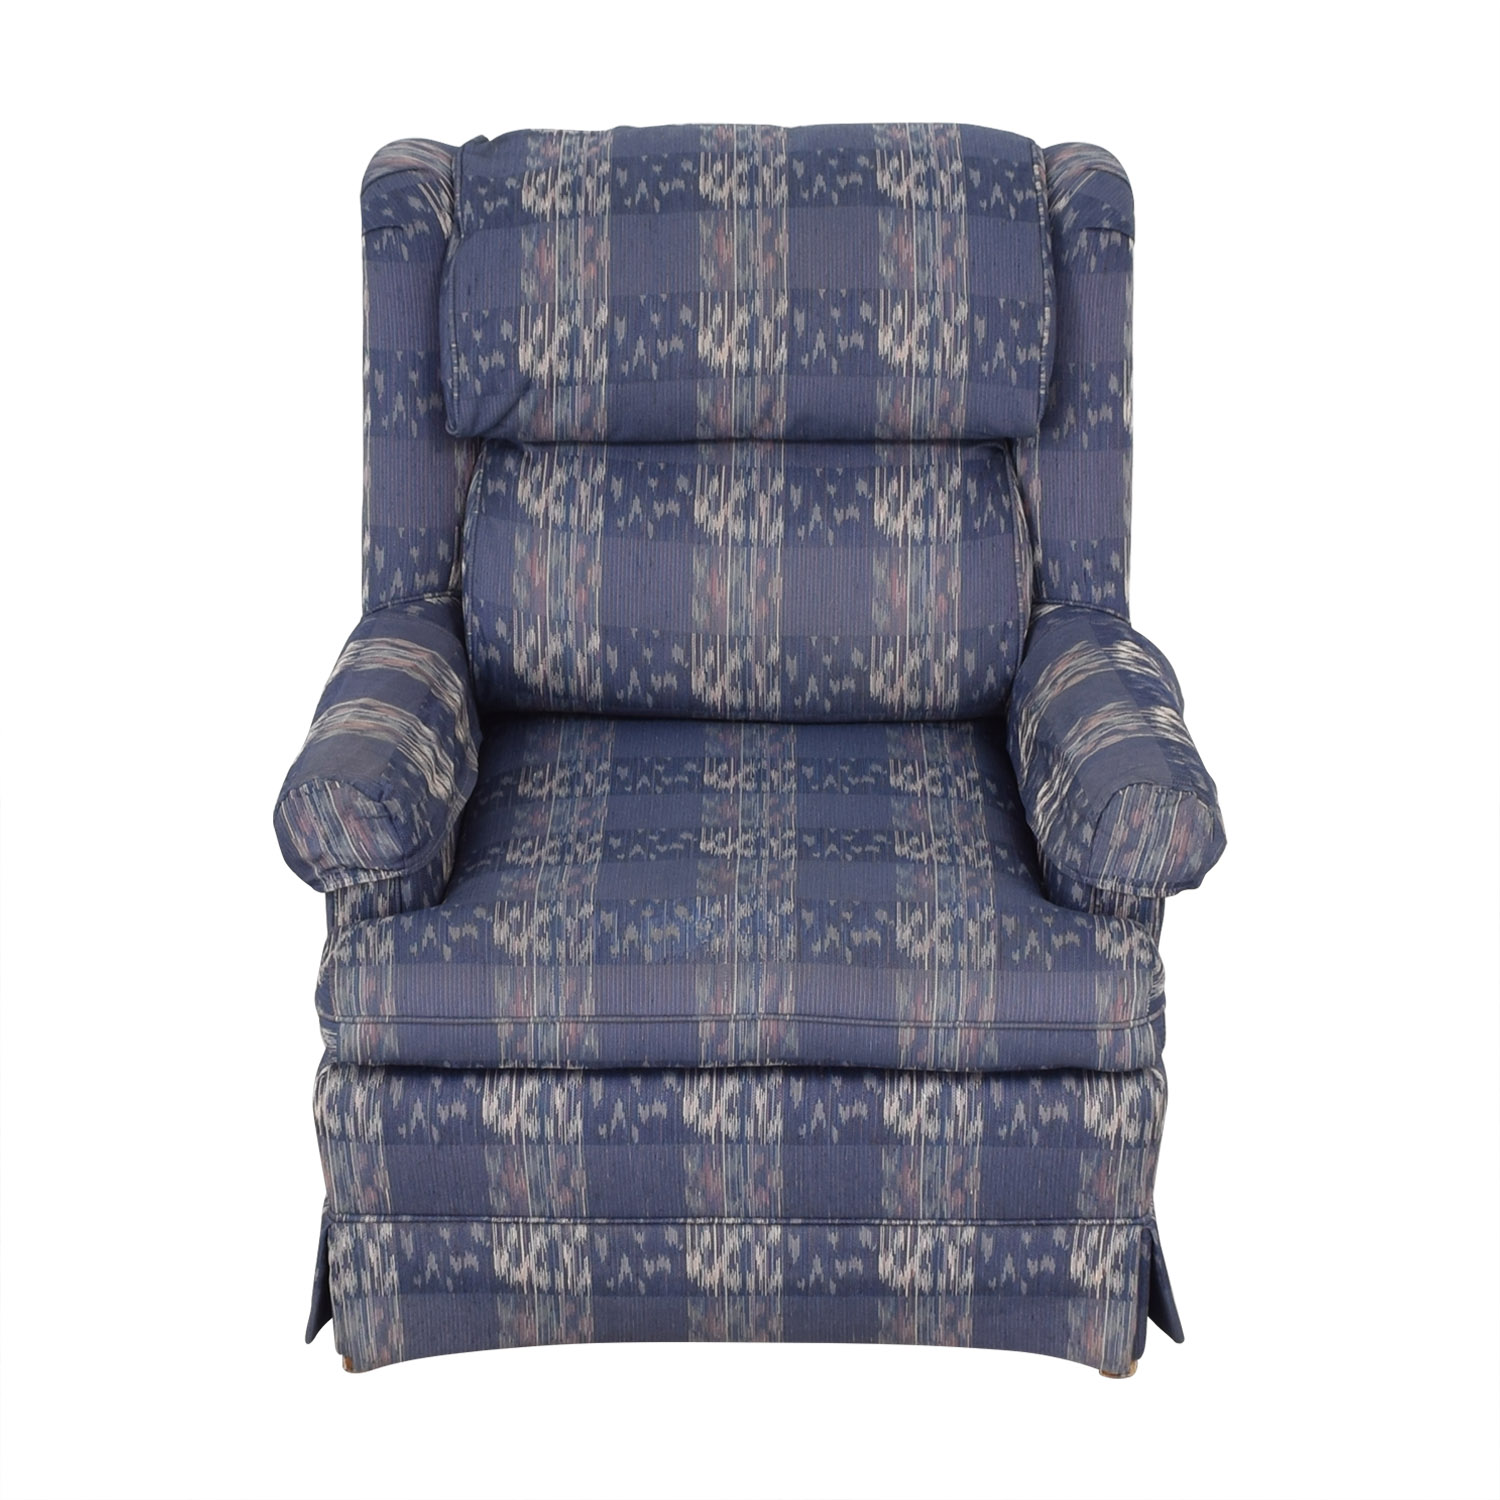 shop Ethan Allen Accent Club Chair Ethan Allen Chairs